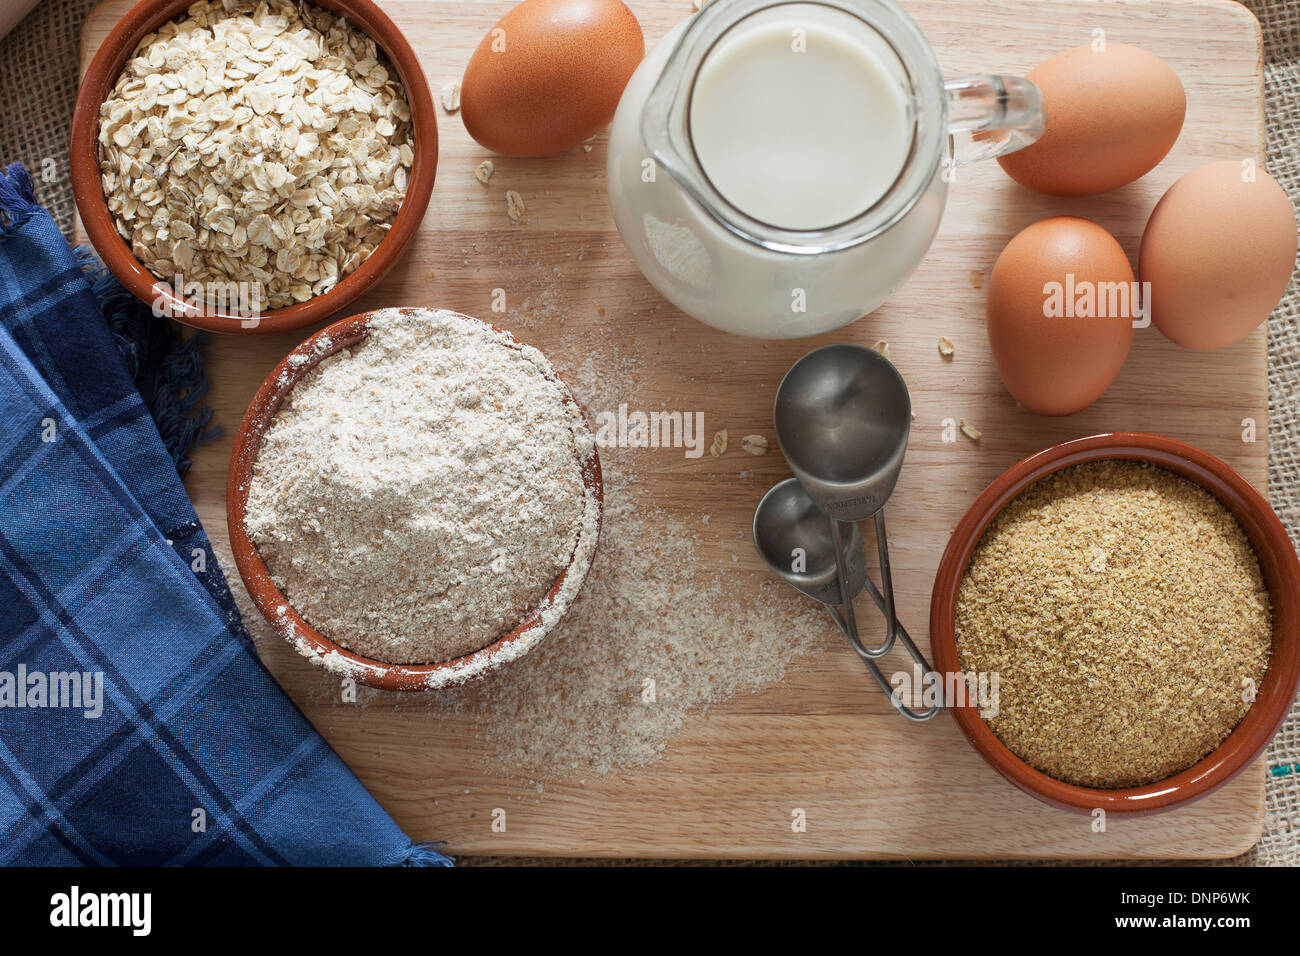 Ingredients for whole grain healthy bread, whole wheat flour, rolled oats and wheat germ with milk and eggs. - Stock Image